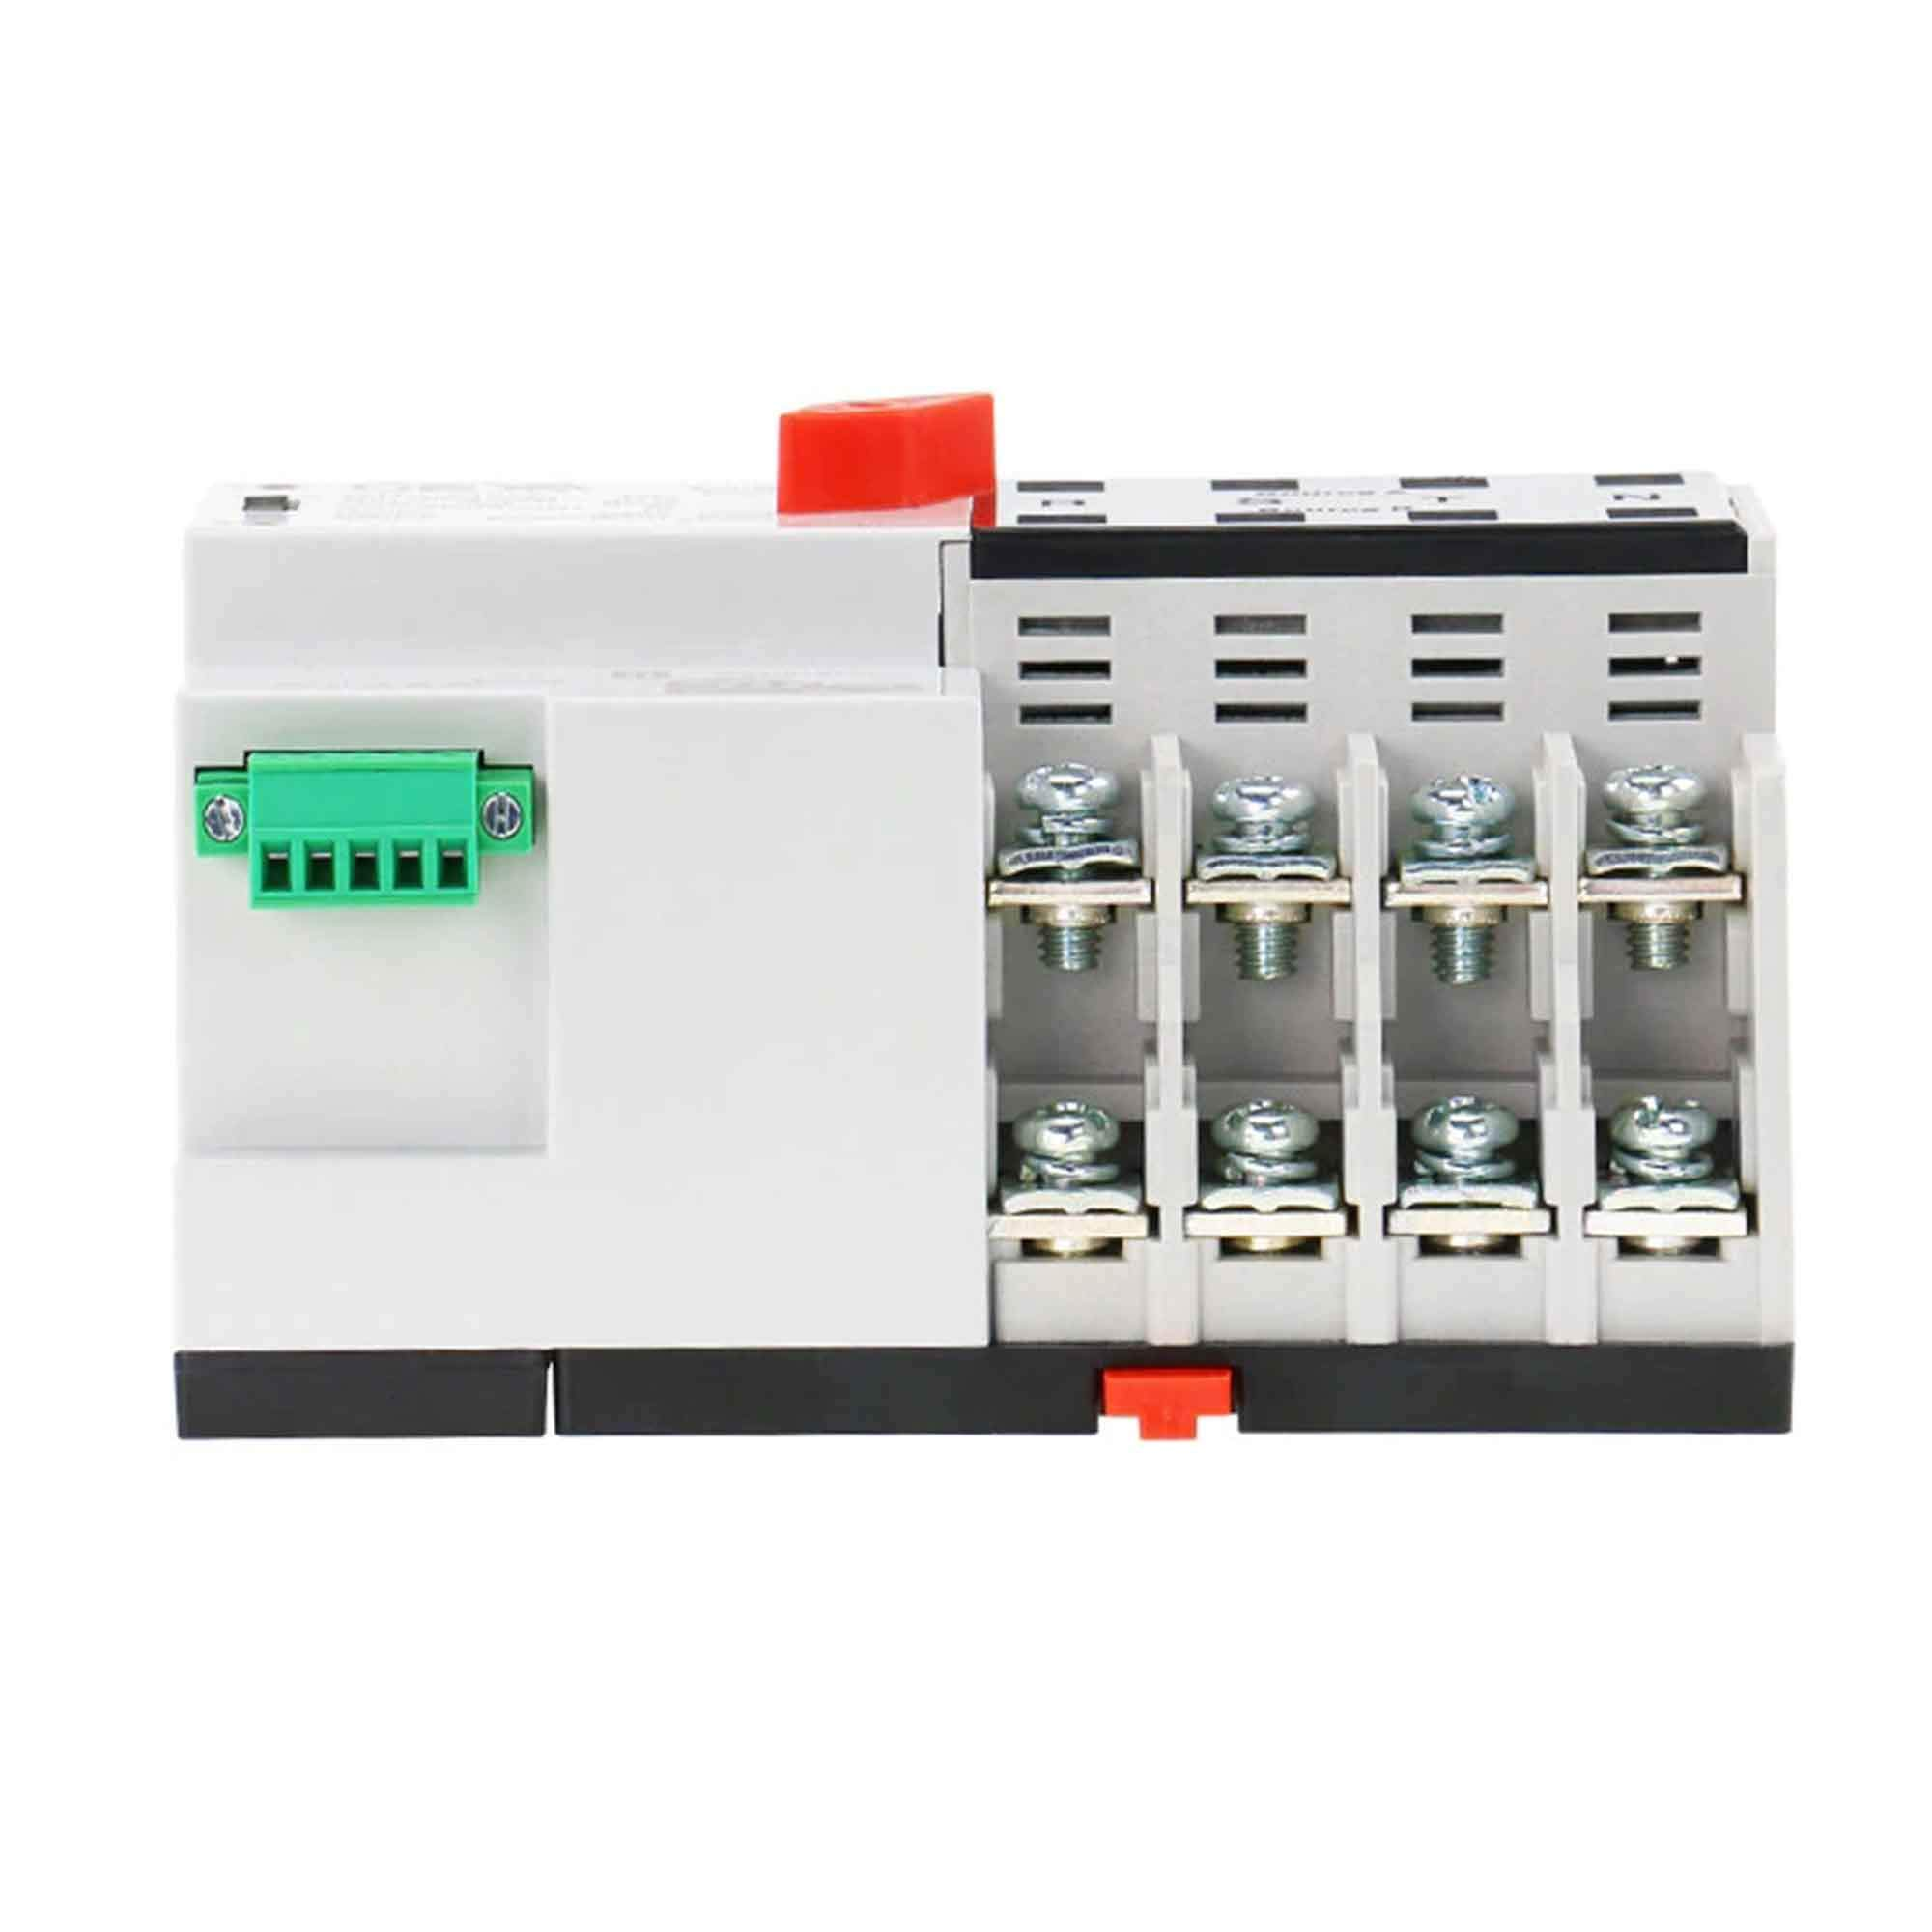 GAEYAELE W2R Mini ATS 4P Automatic Transfer Switch Controller Electrical Type ATS Max 100A 4POLE (W2R-4P 100A) by GAEYAELE (Image #4)